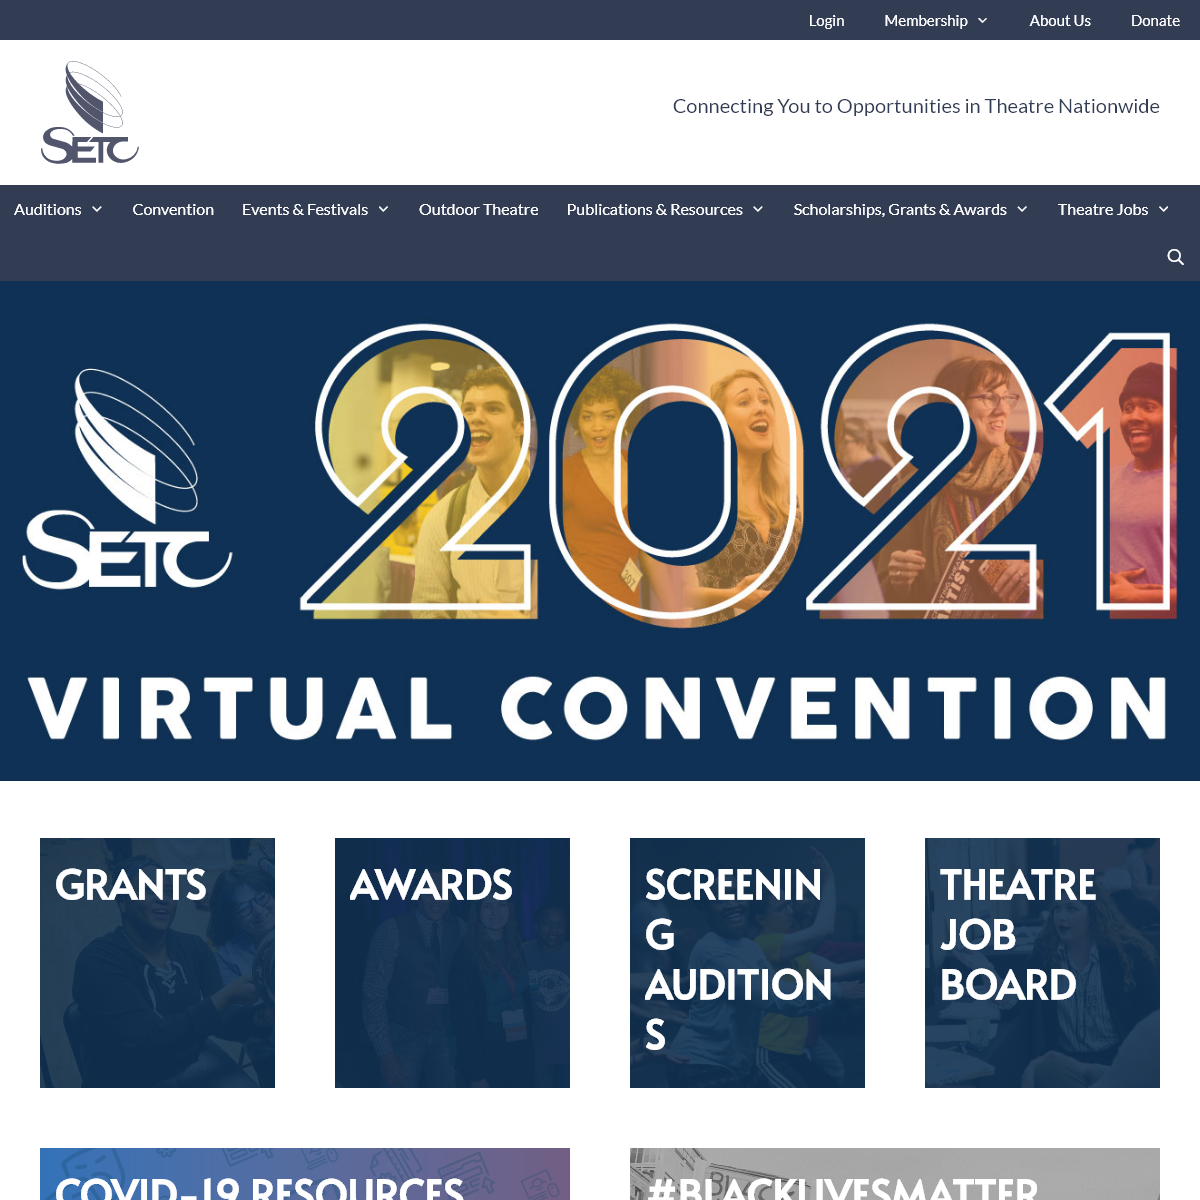 SETC - Connecting You to Opportunities in Theatre Nationwide